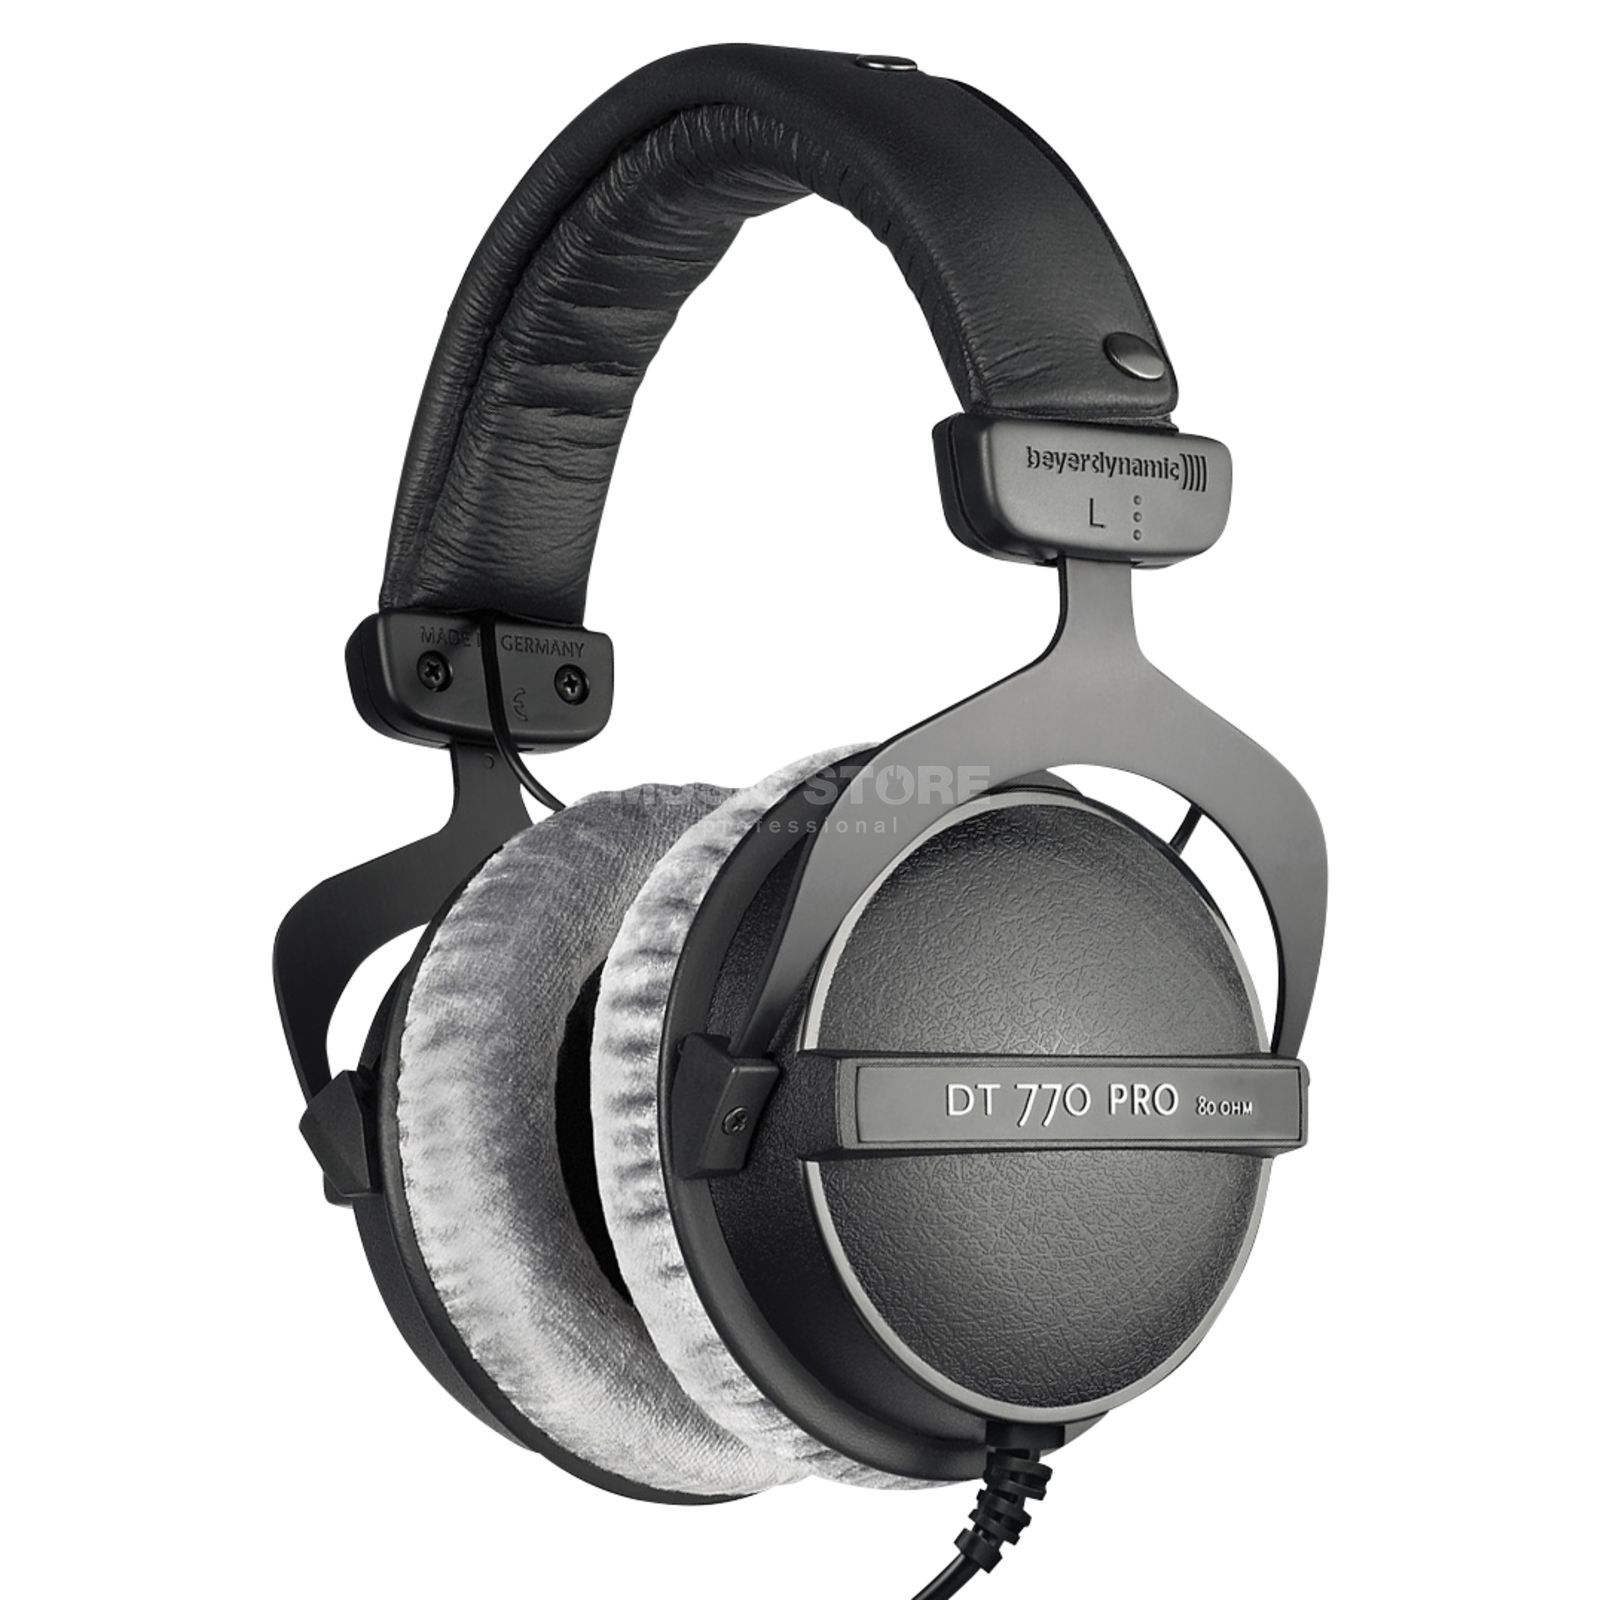 Beyerdynamic DT 770Pro /80 Studio Headphone closed, 80 ohm Produktbillede